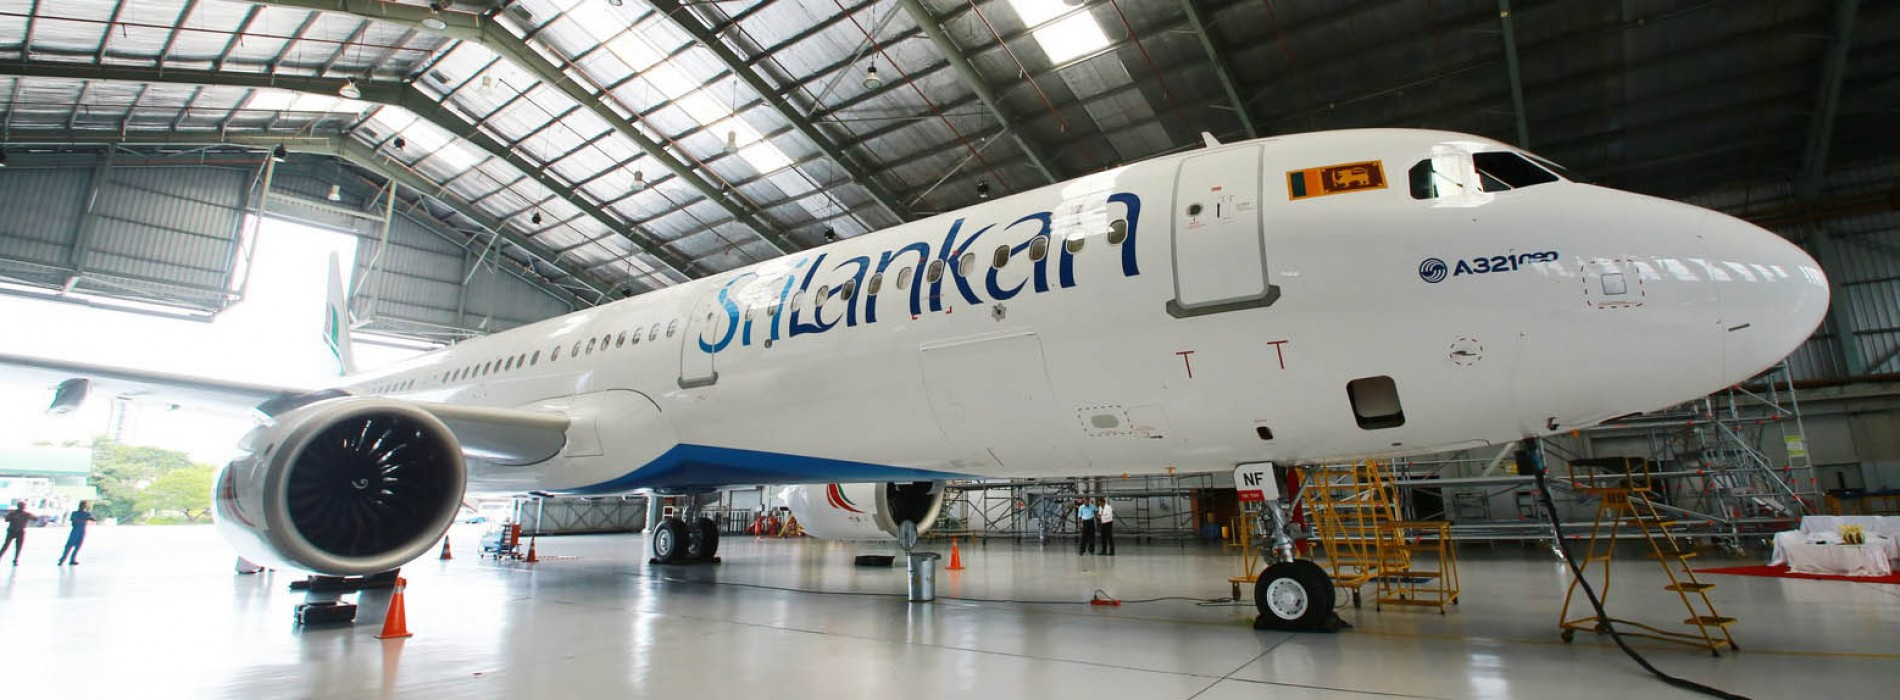 SriLankan Airlines' brand video 'Serendipity Right Next Door' takes social media by storm